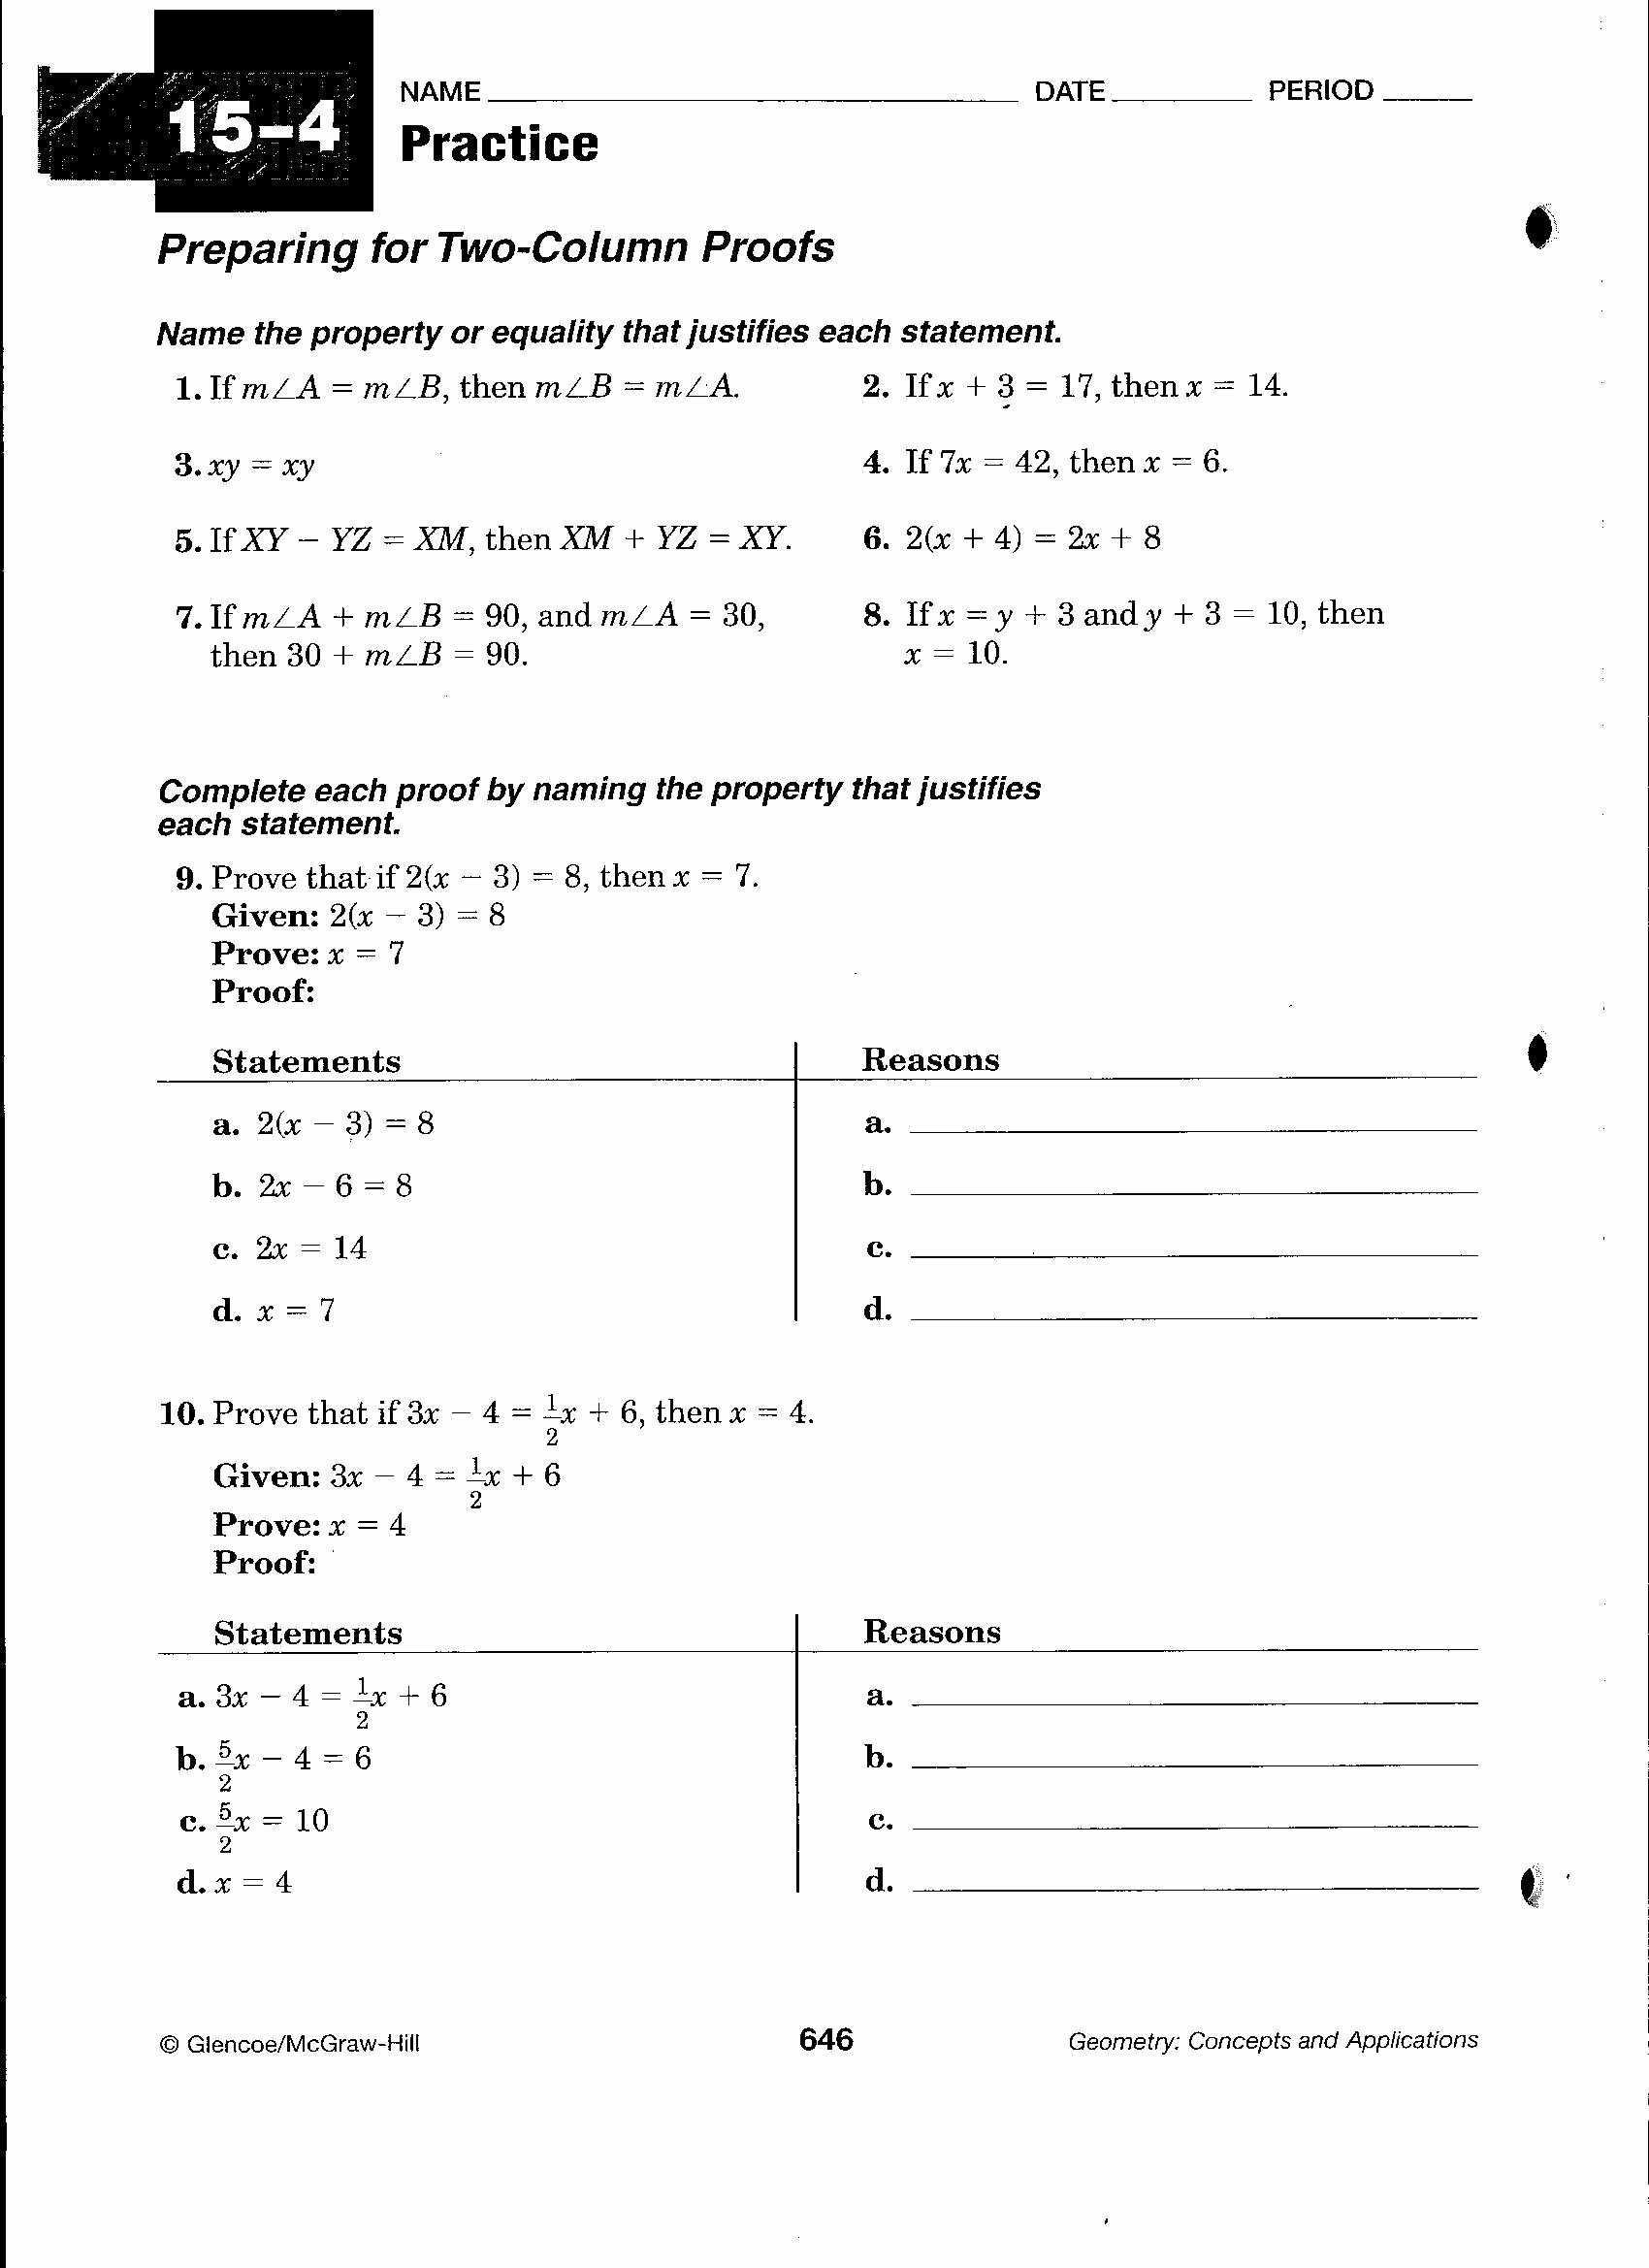 Geometric Proofs Worksheet with Answers top Geometric Proofs Worksheet with Answers Best Geometric